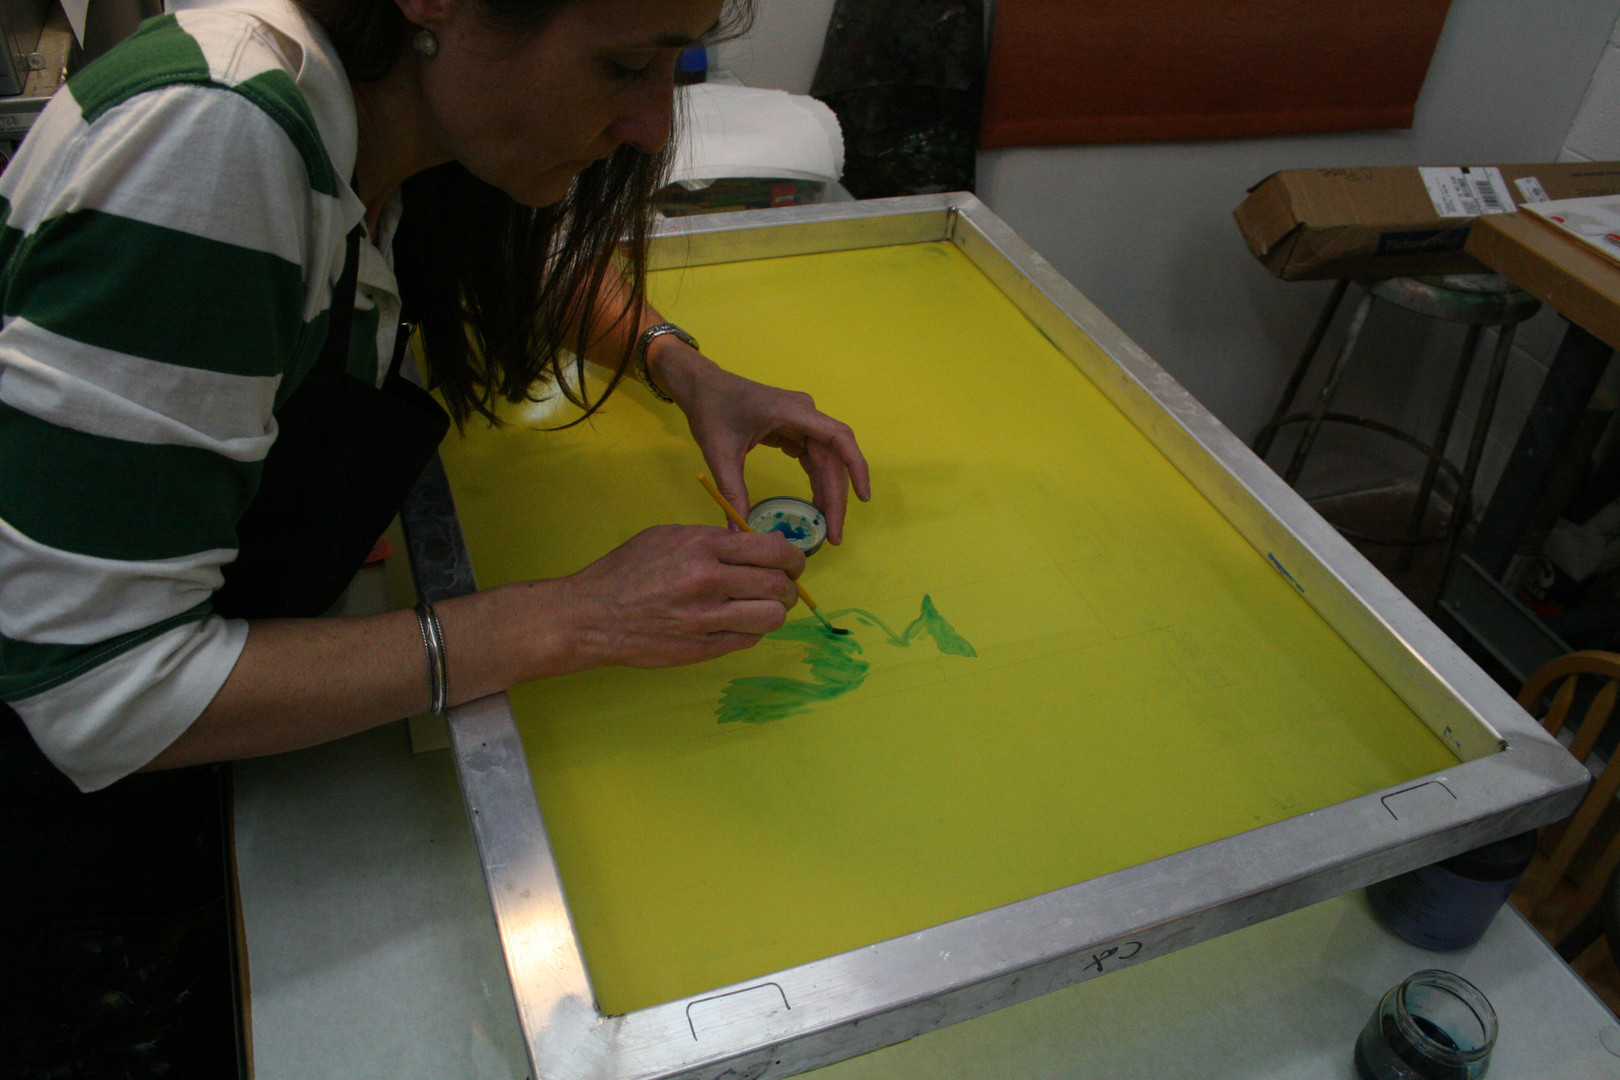 The screen mesh can be painted with water soluble paints